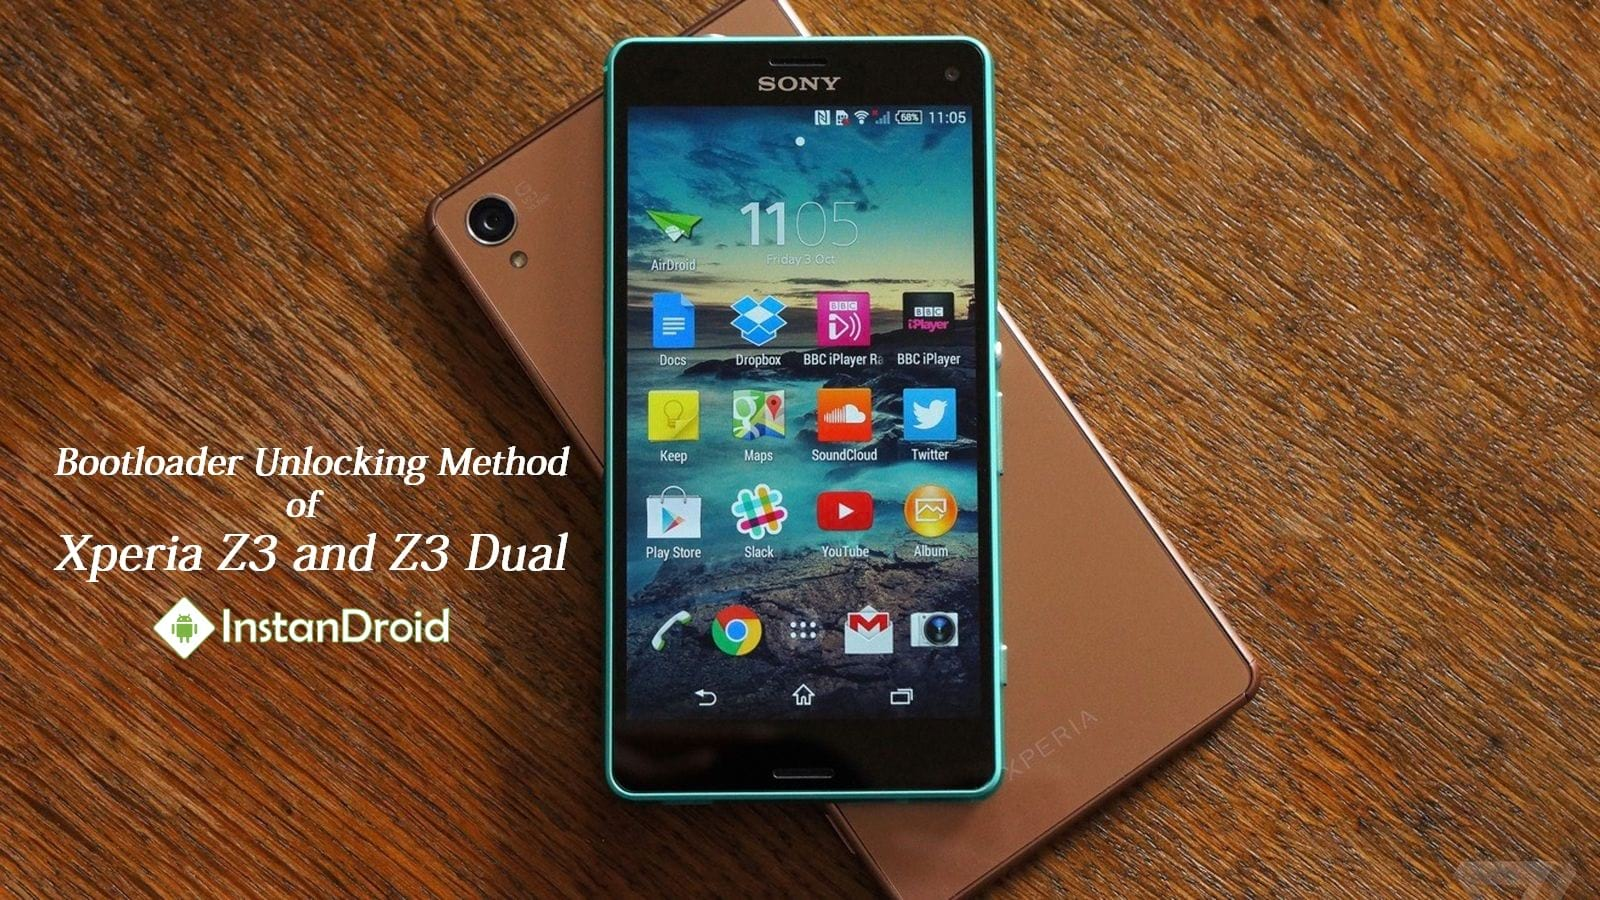 Sony Xperia Z3 Bootloader Unlocking Method (Official)